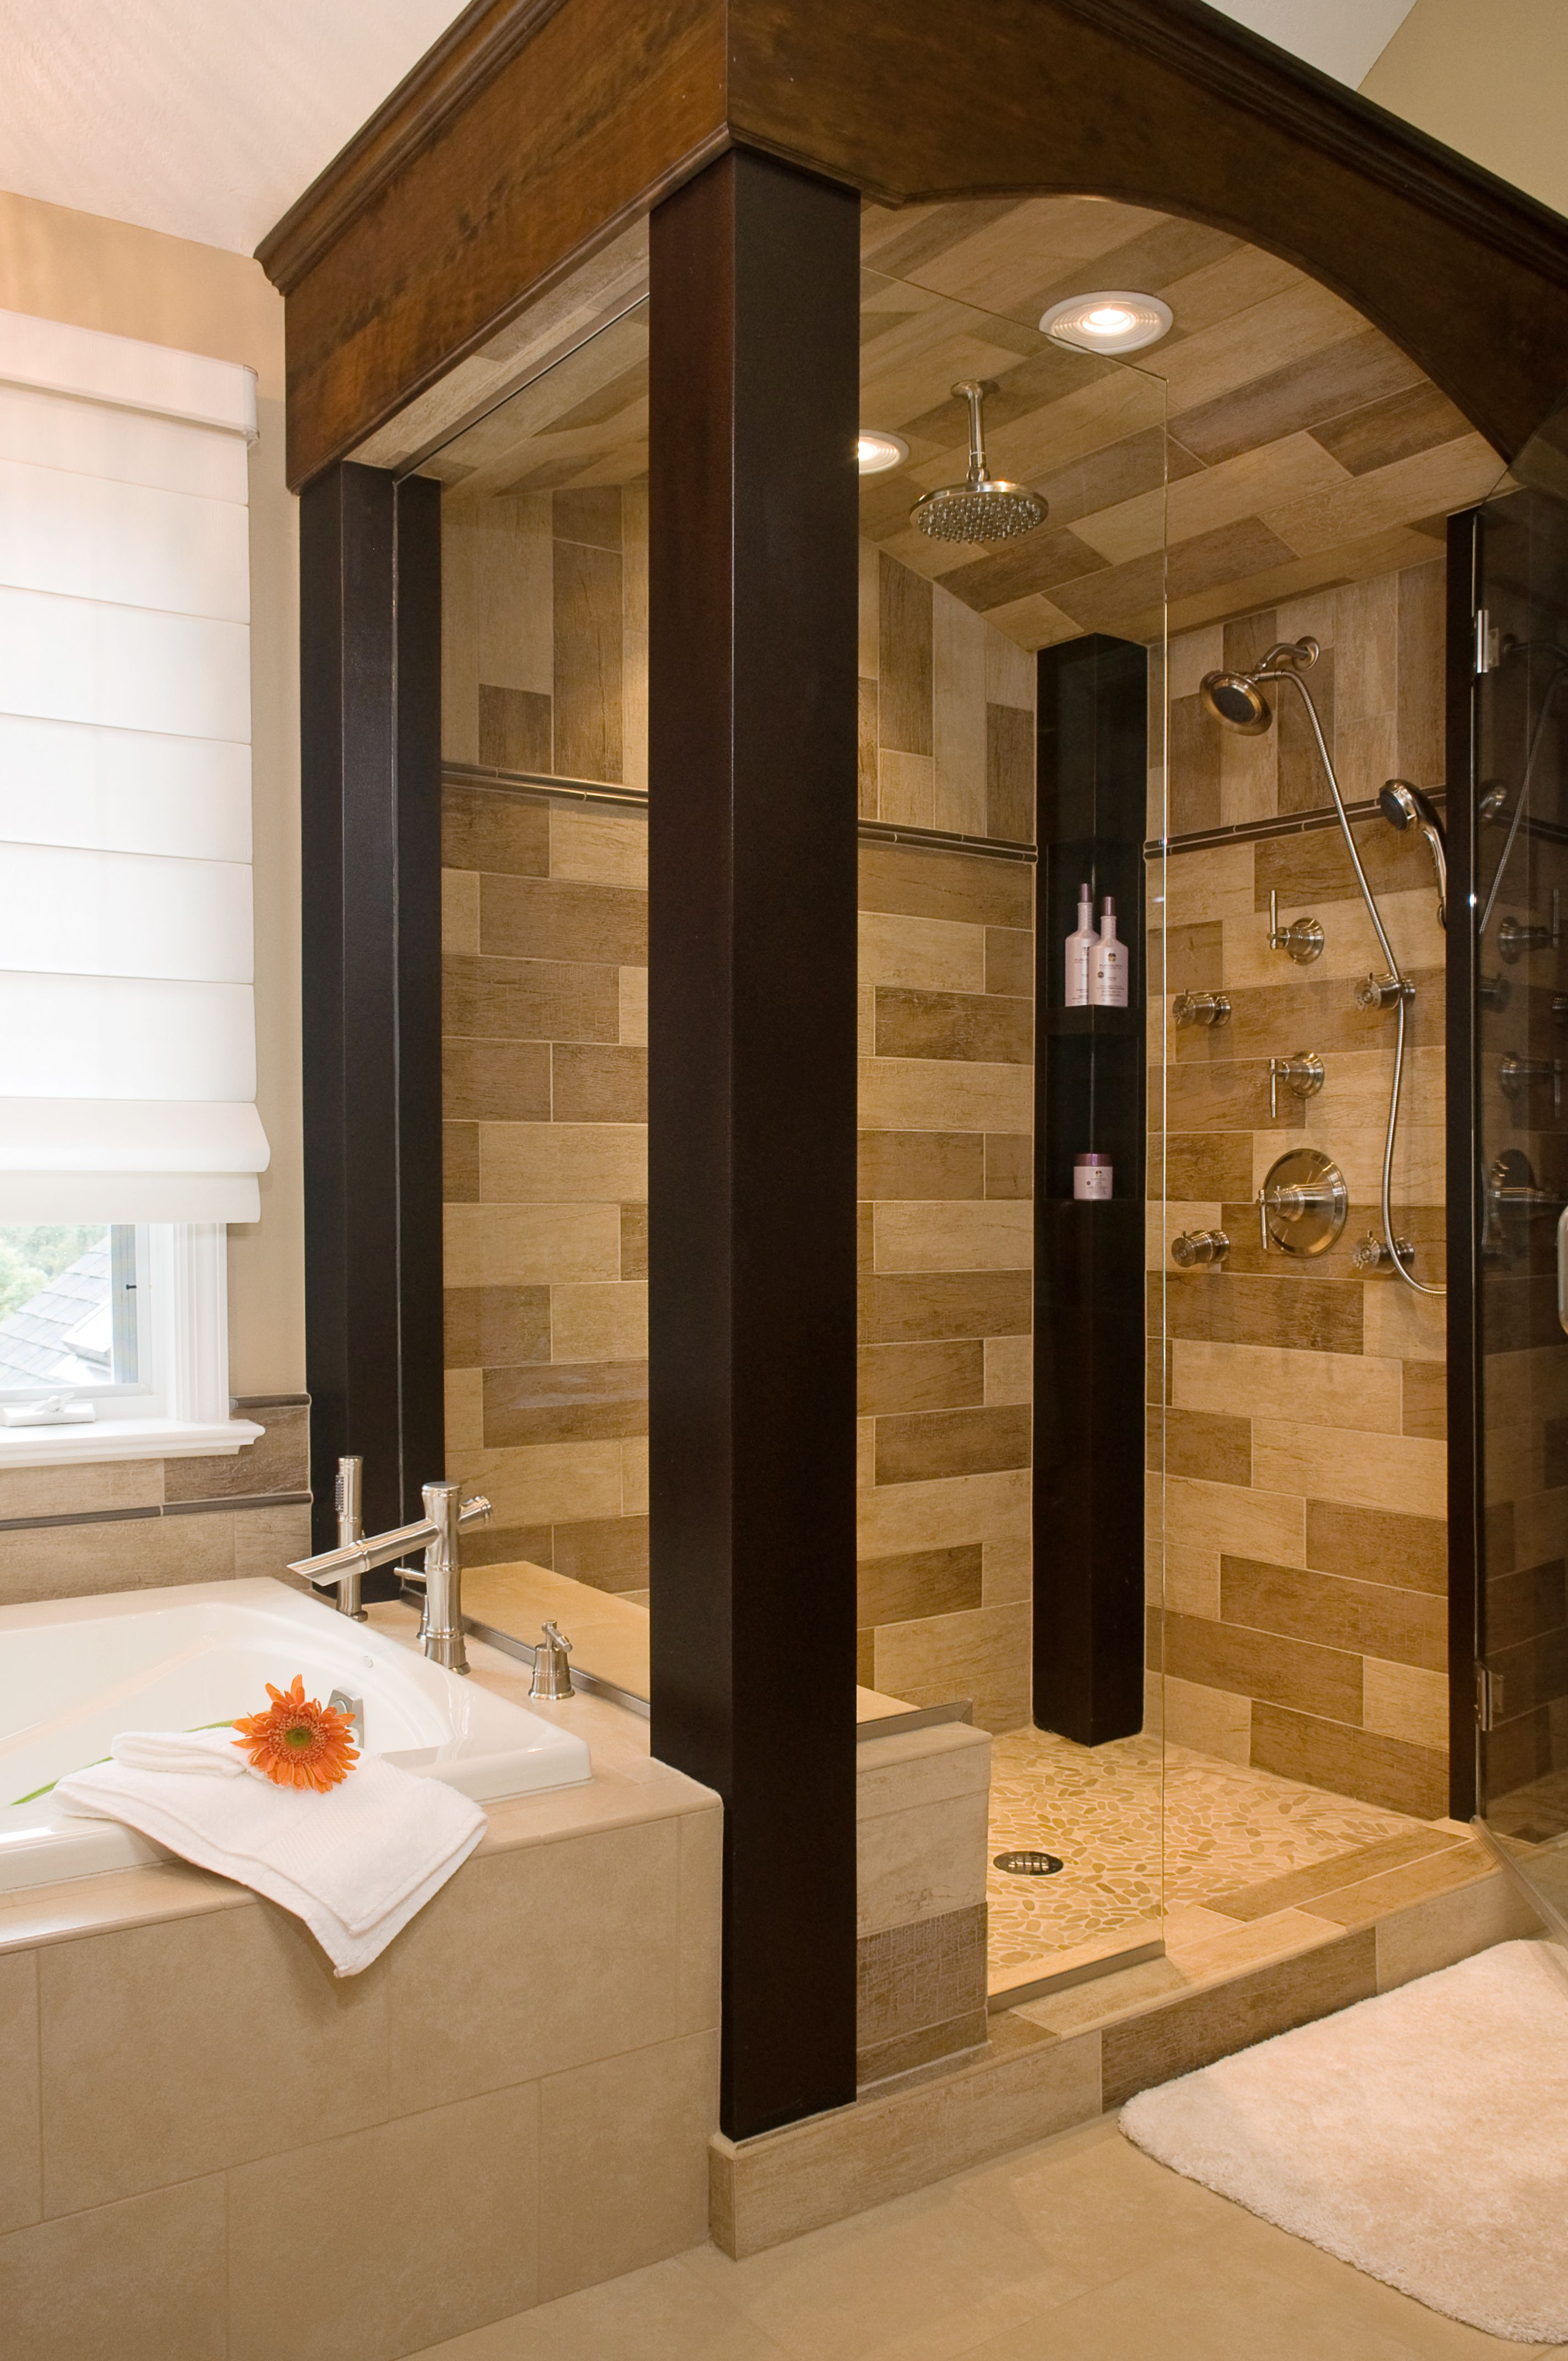 Beautiful custom design on a walk in shower metal columns beautiful custom design on a walk in shower metal columns ceramic tile interior dailygadgetfo Images